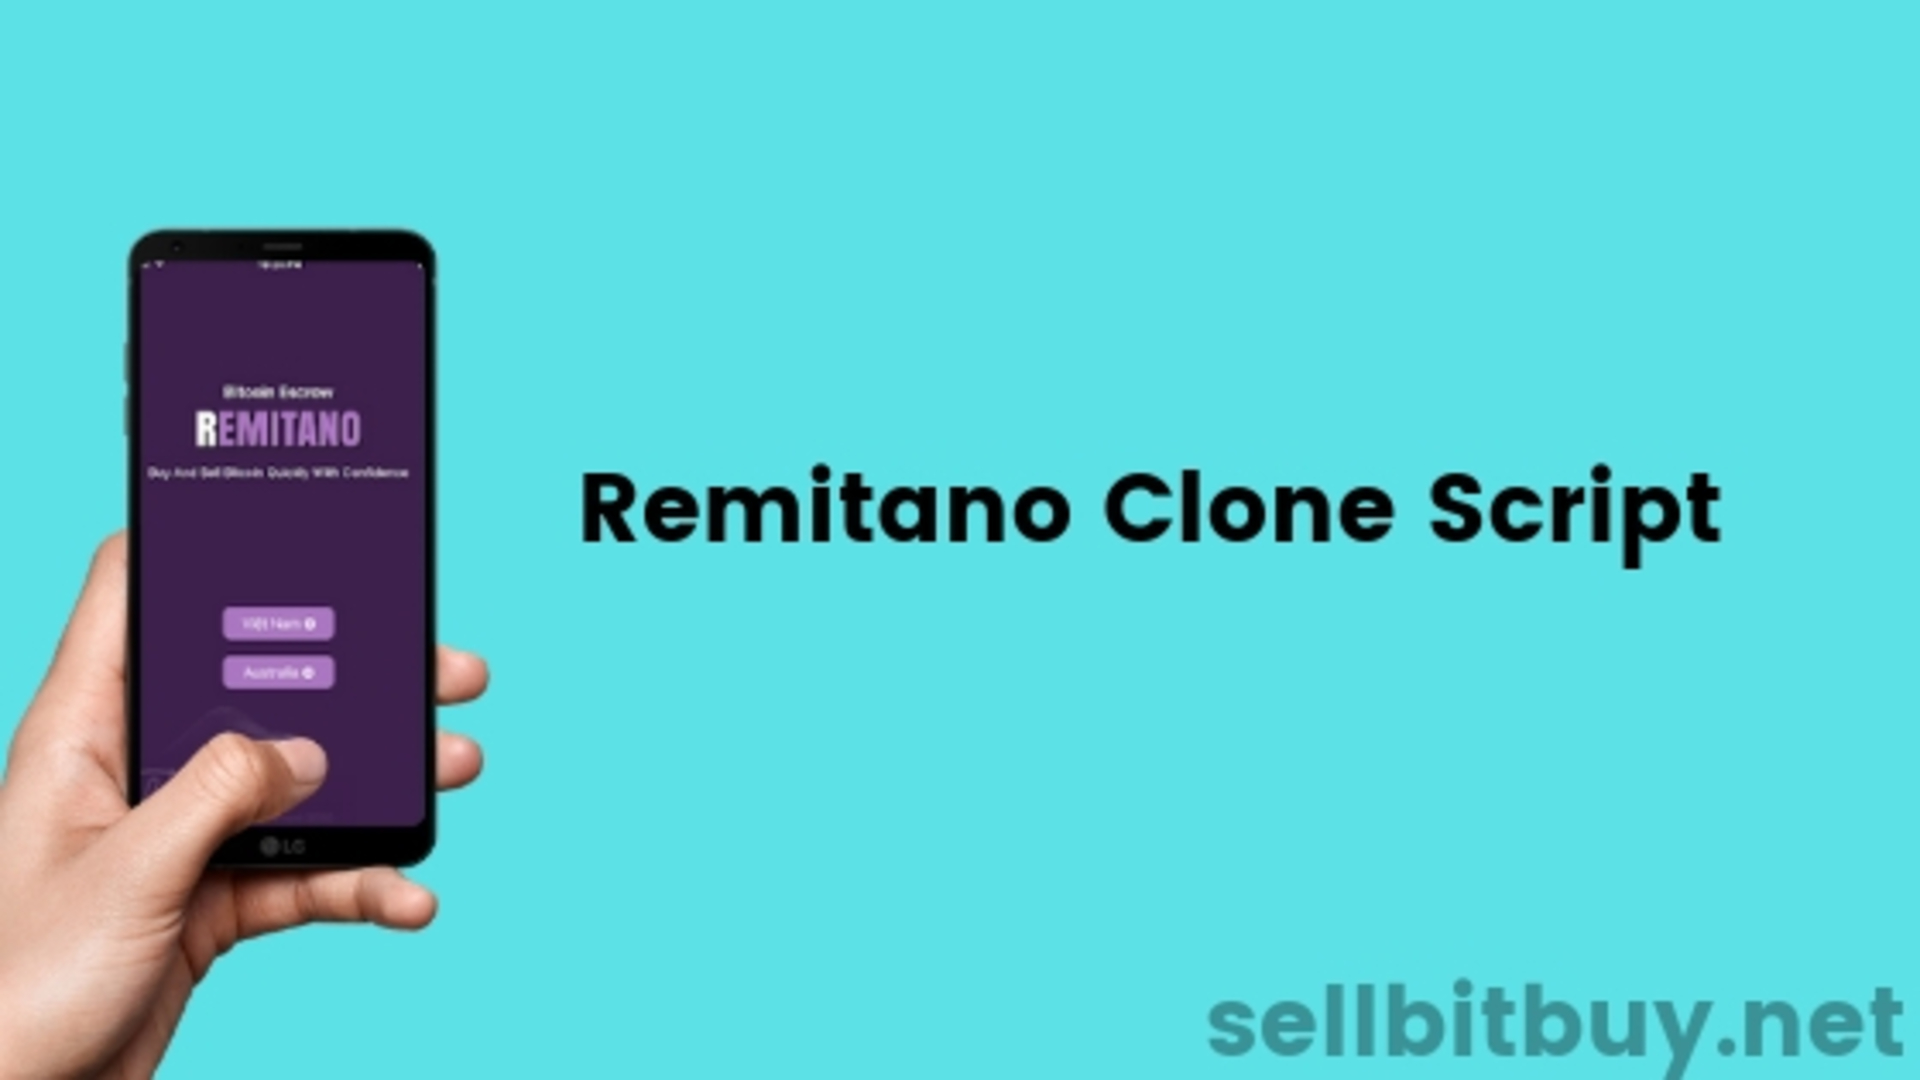 Where I can get a remitano clone script? image